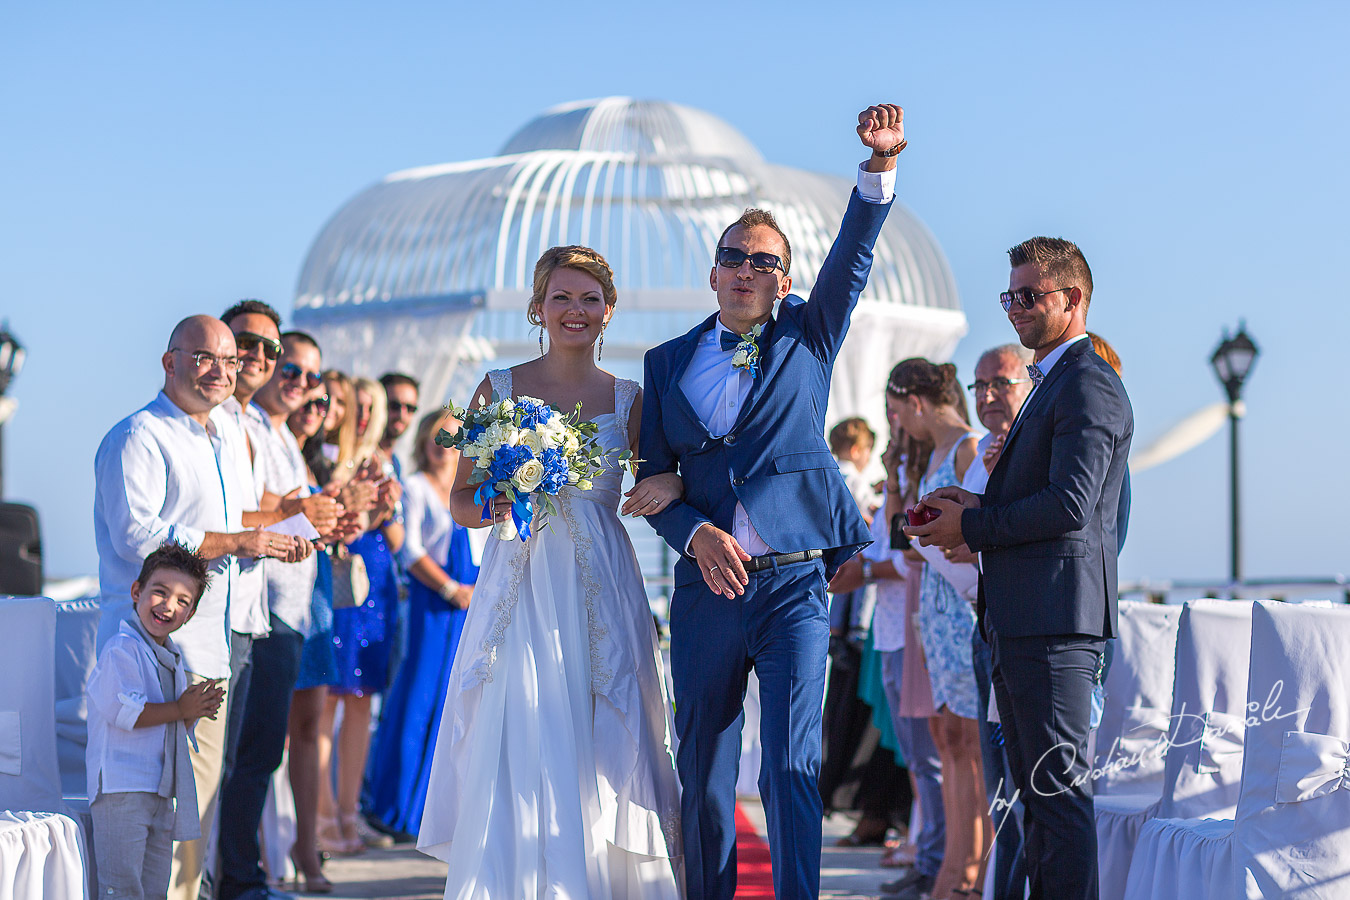 Just seconds after the ceremony, the groom is showing his enthusiasm at Elias Beach Hotel in Limassol